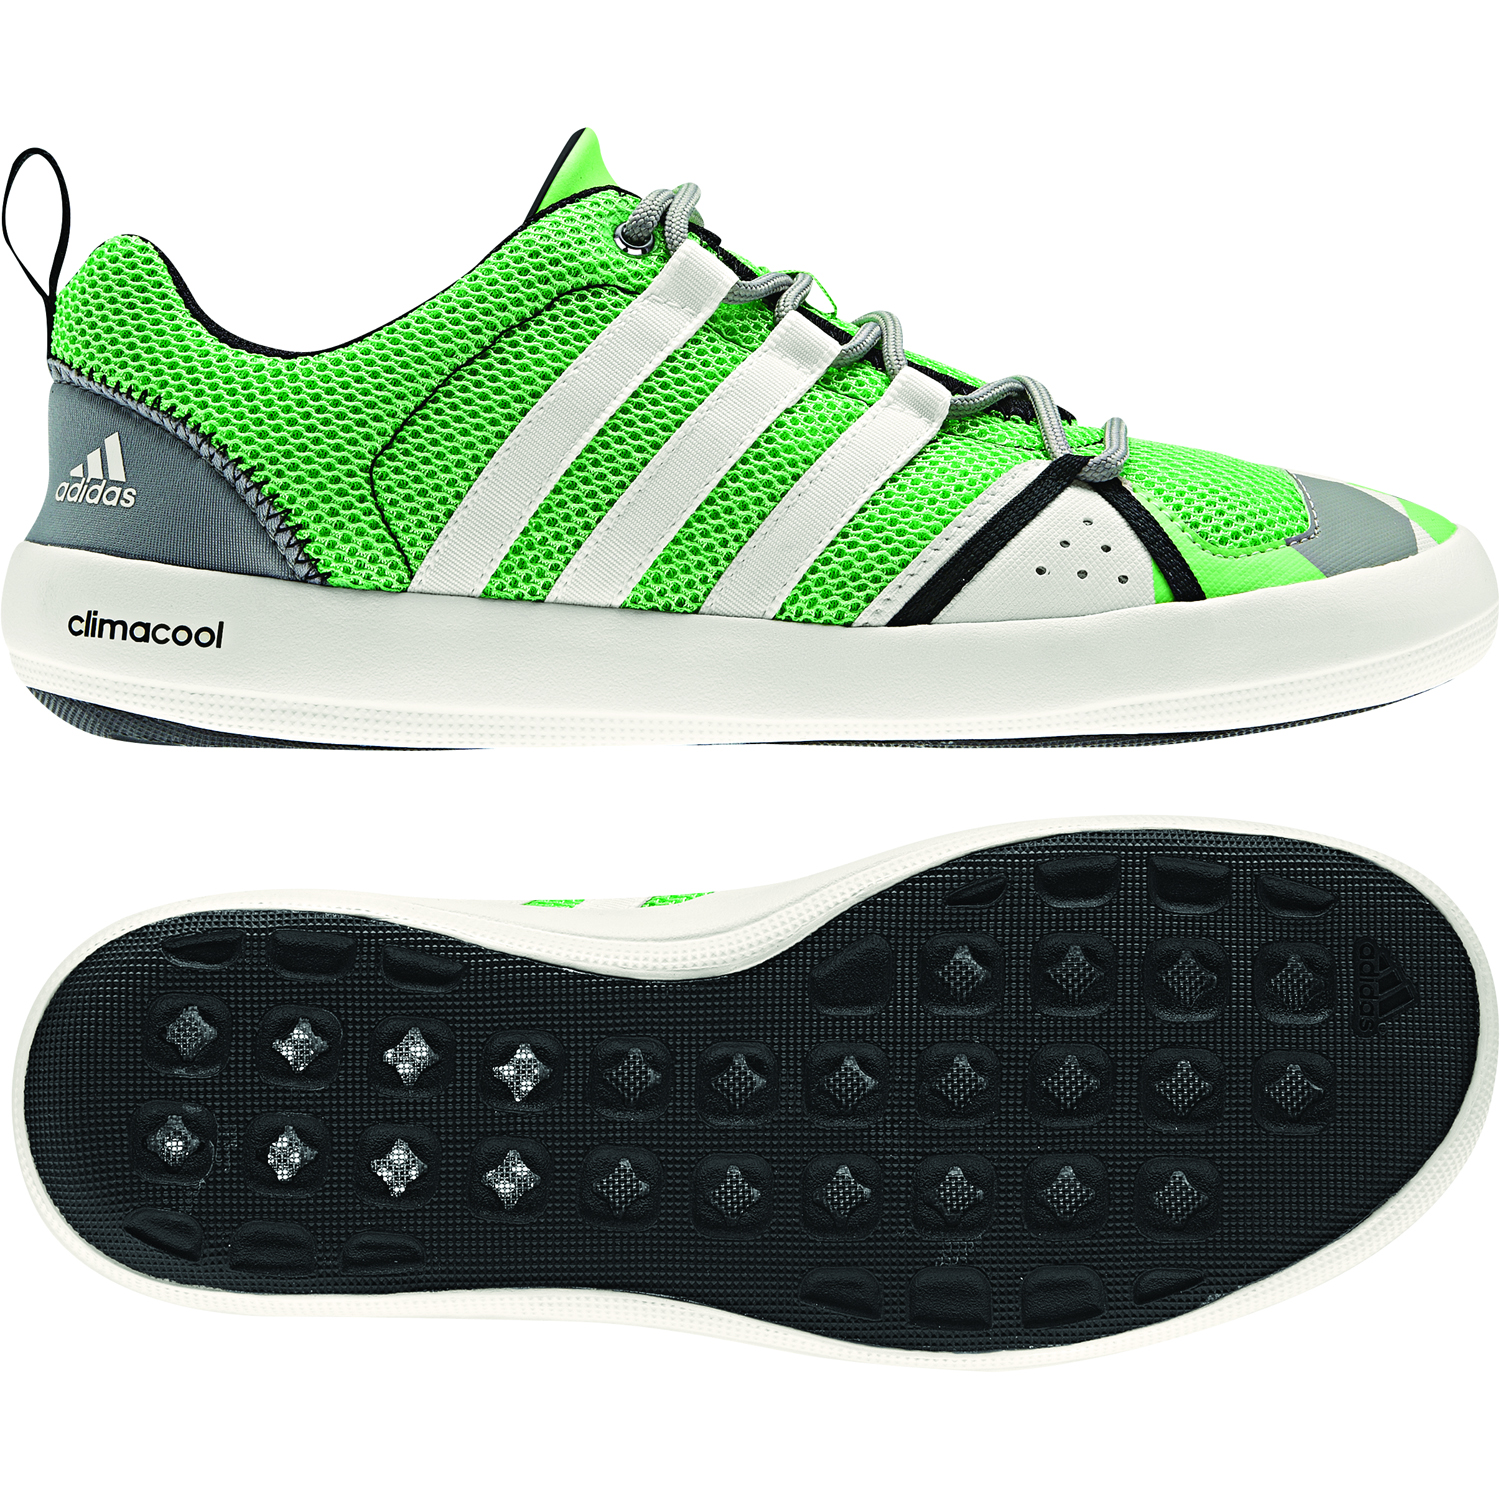 adidas climacool boat lace shoes g64560 team one newport. Black Bedroom Furniture Sets. Home Design Ideas